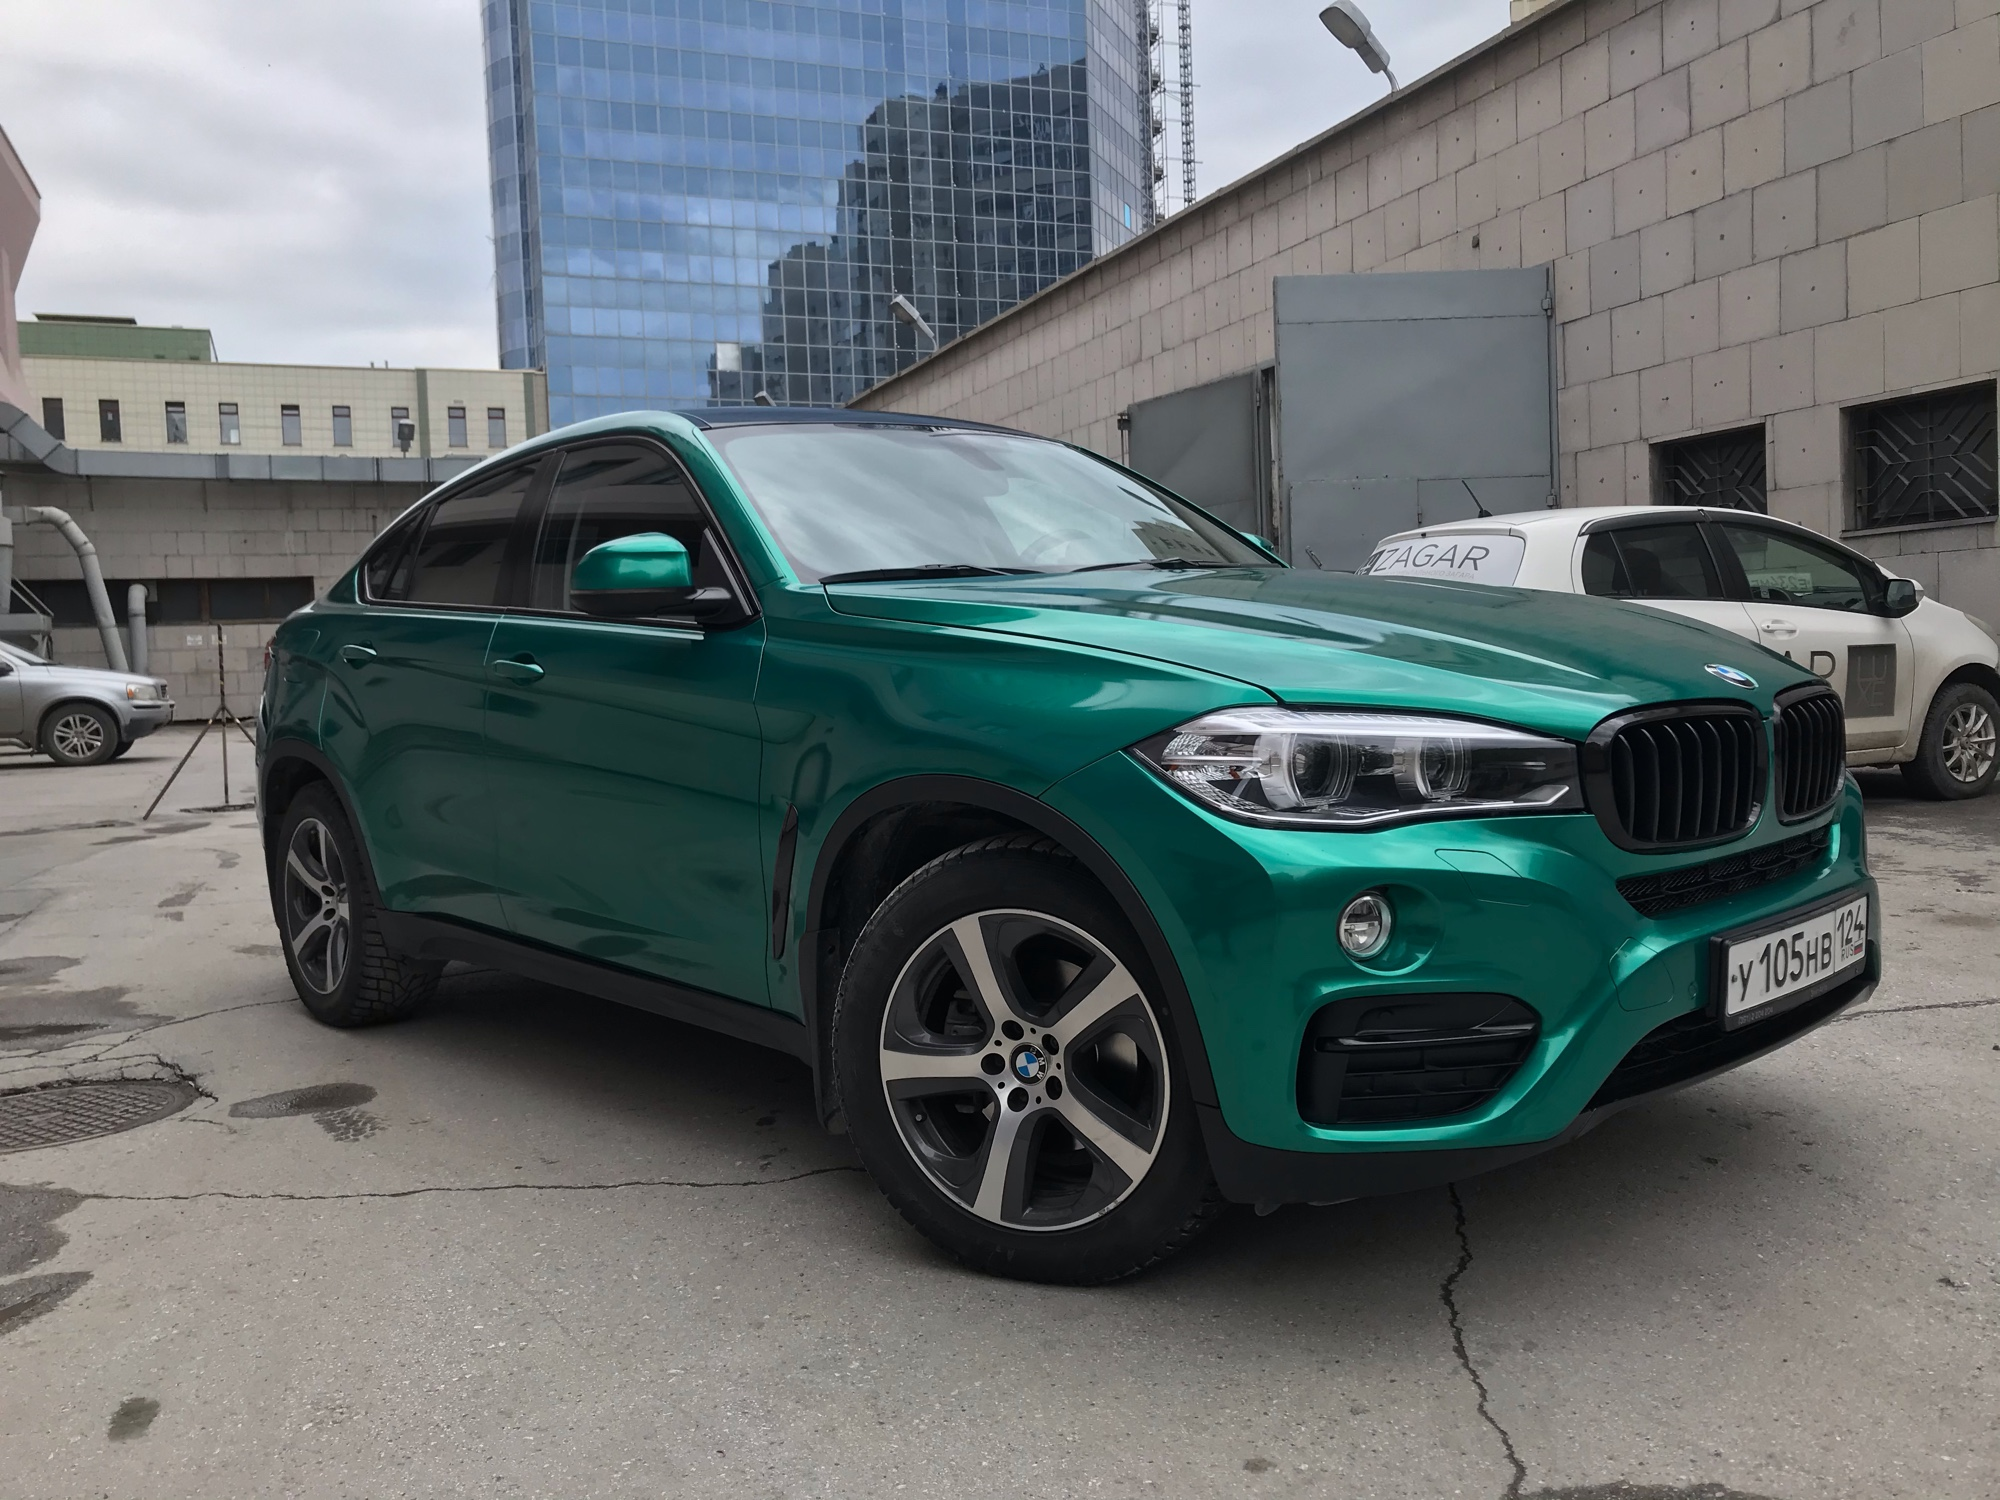 BMW X6 в автопленке Avery SWF Dark Green Pearlescentl